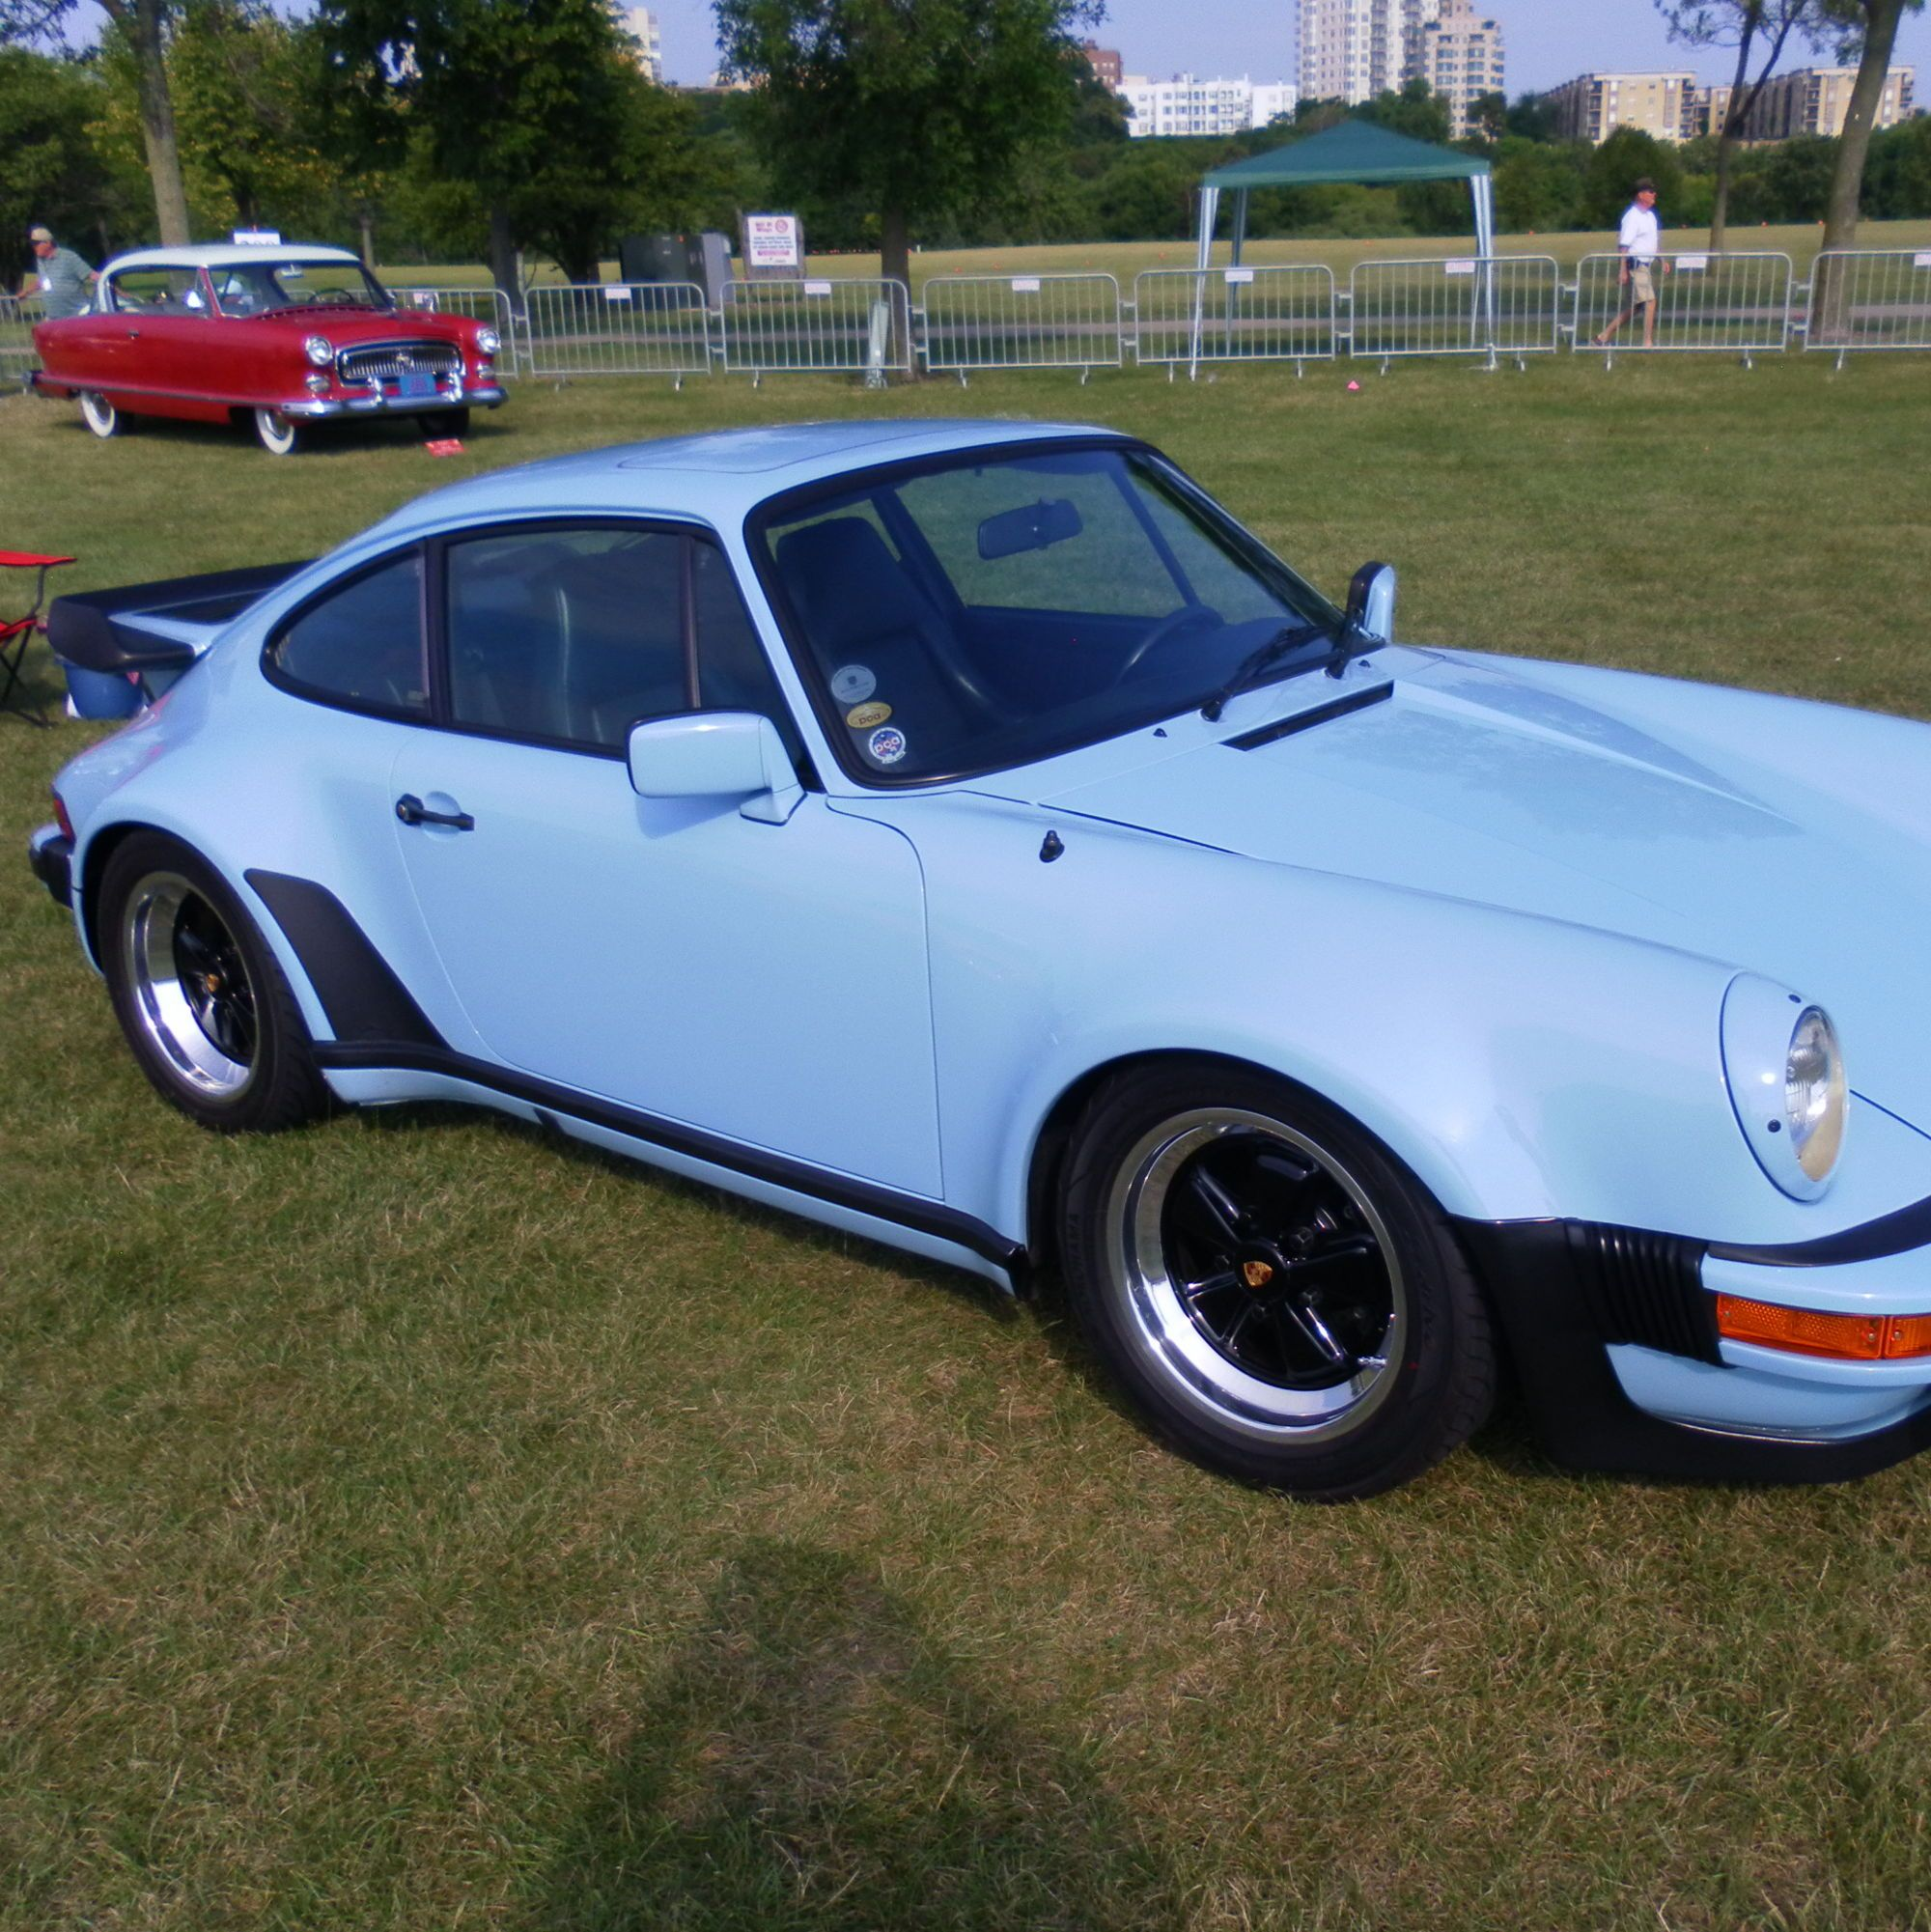 Gulf Blue 930 Turbo Porsche China